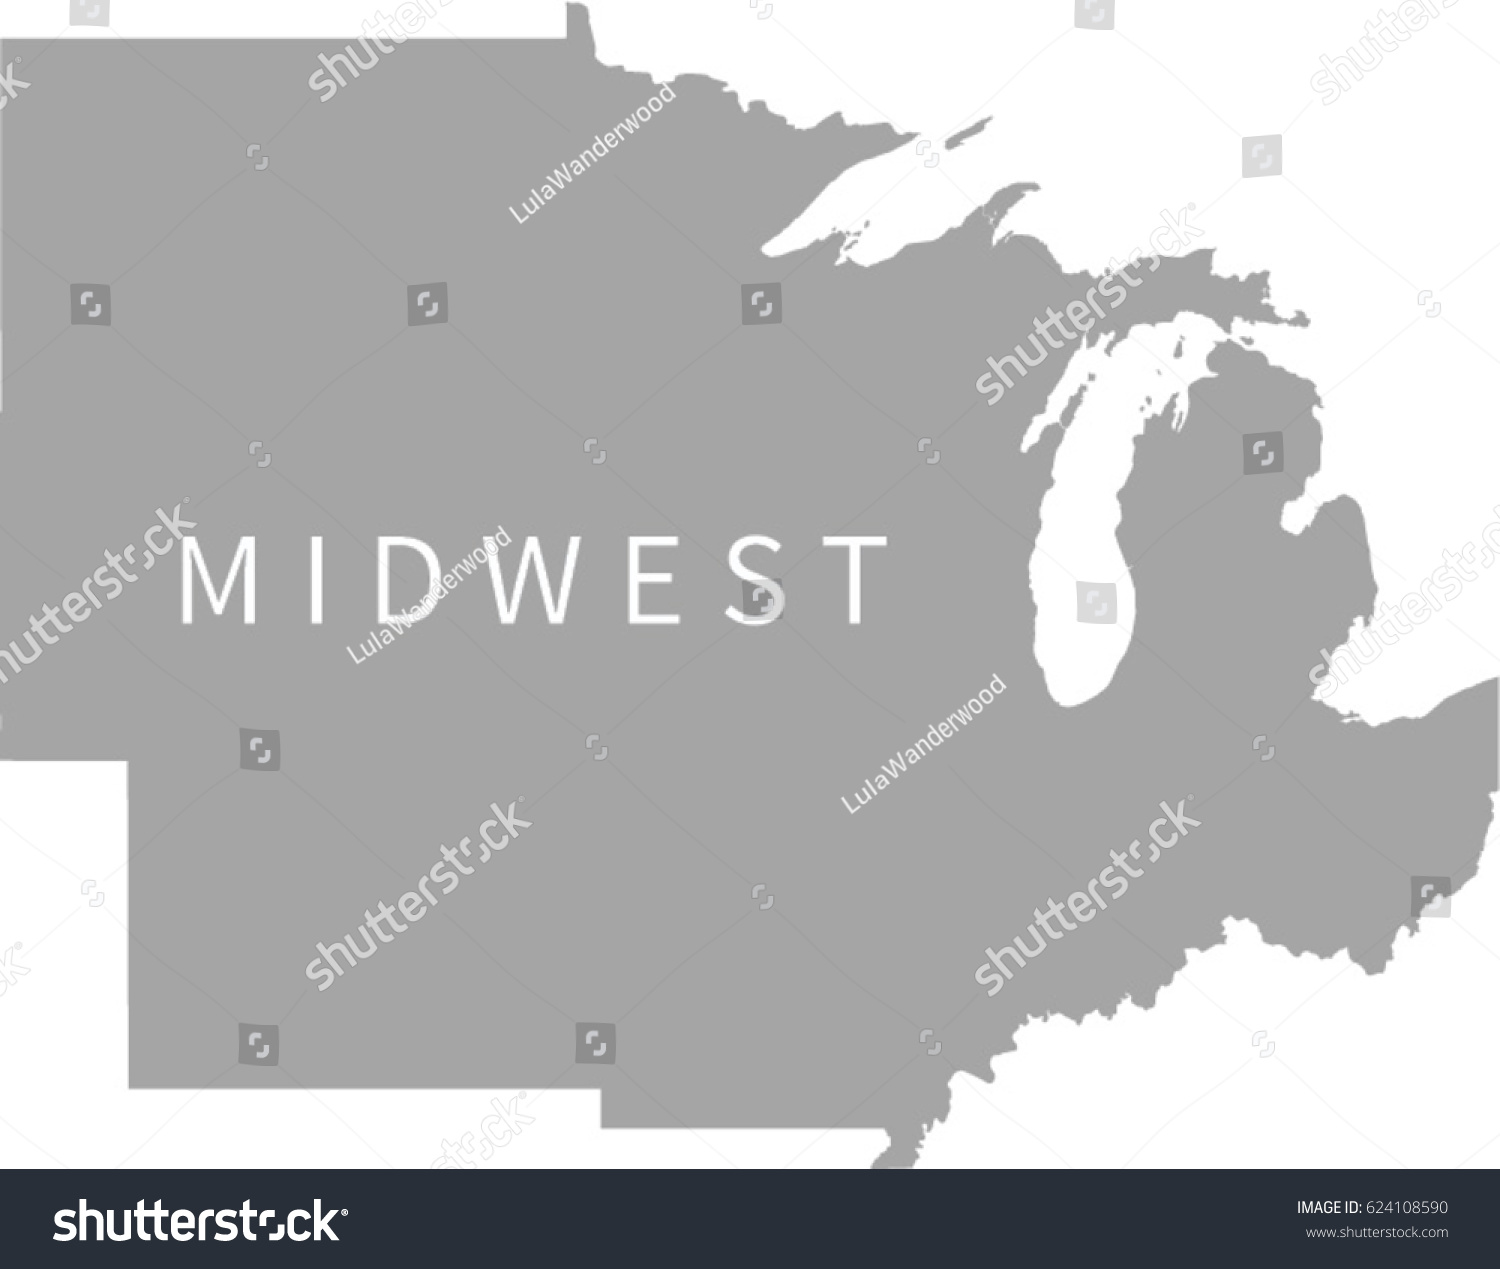 Midwest Region Us Map Stock Vector Shutterstock - Us map midwest region